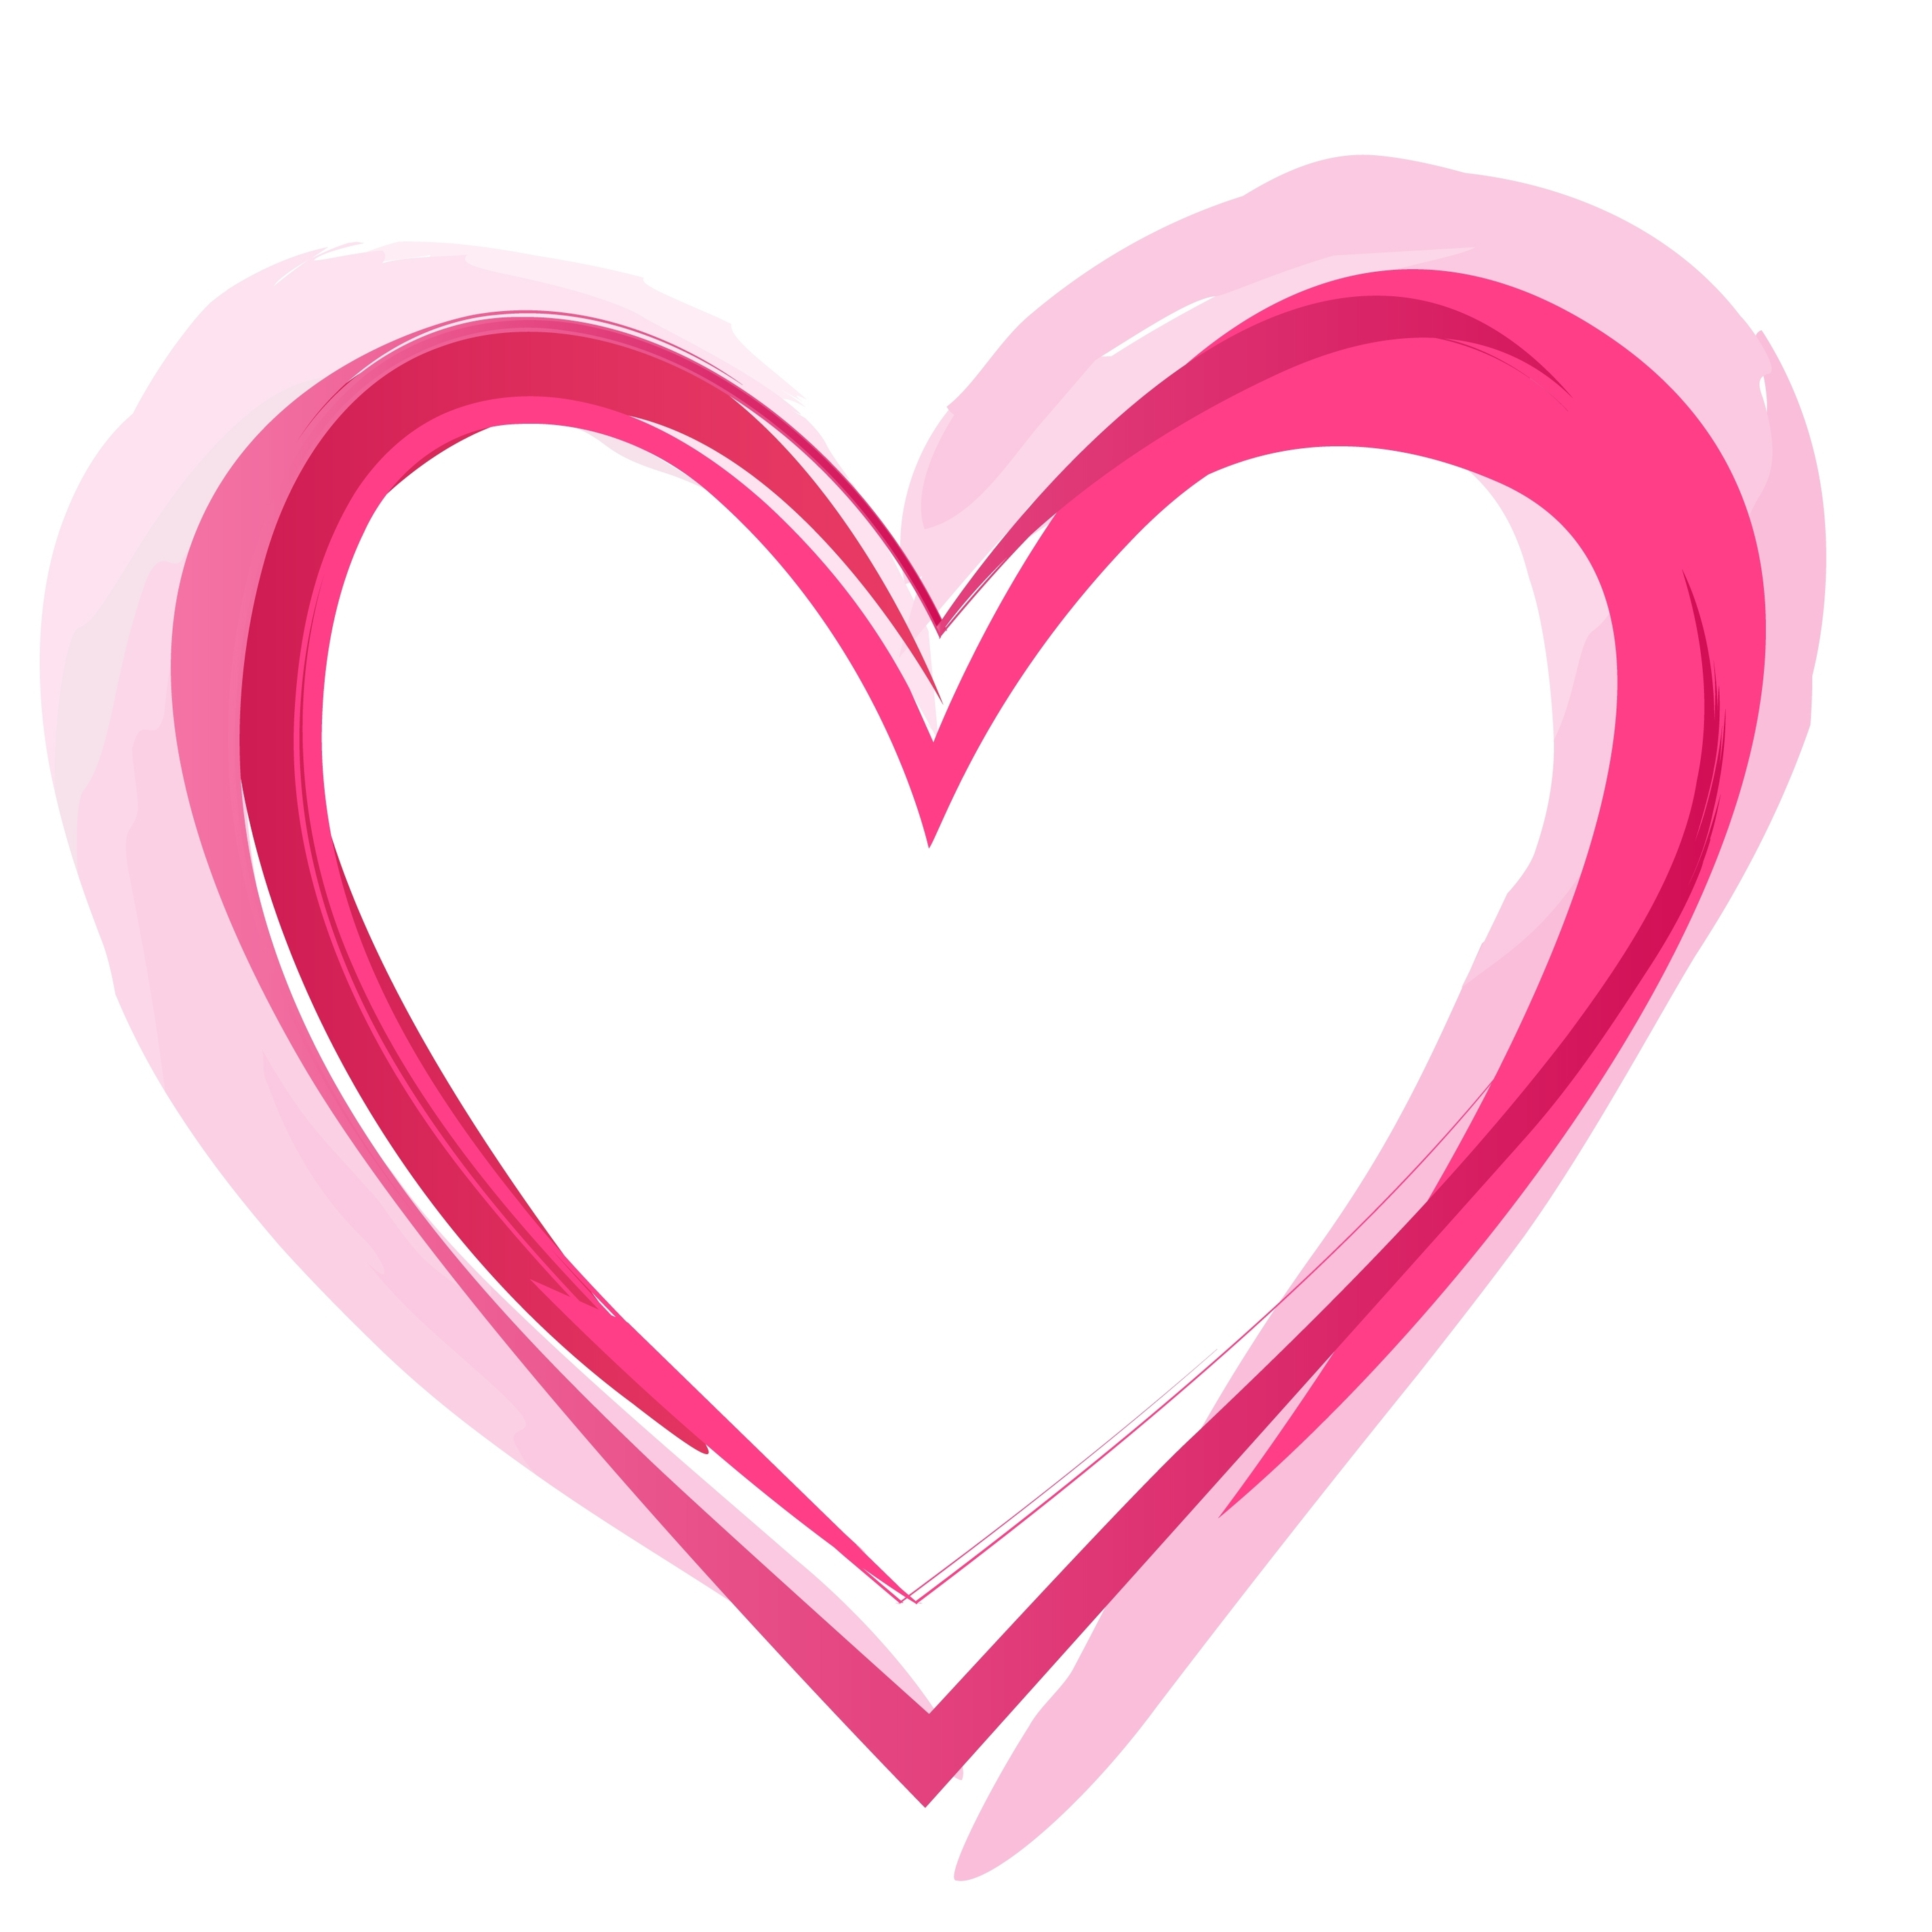 Pink child heart outline clipart